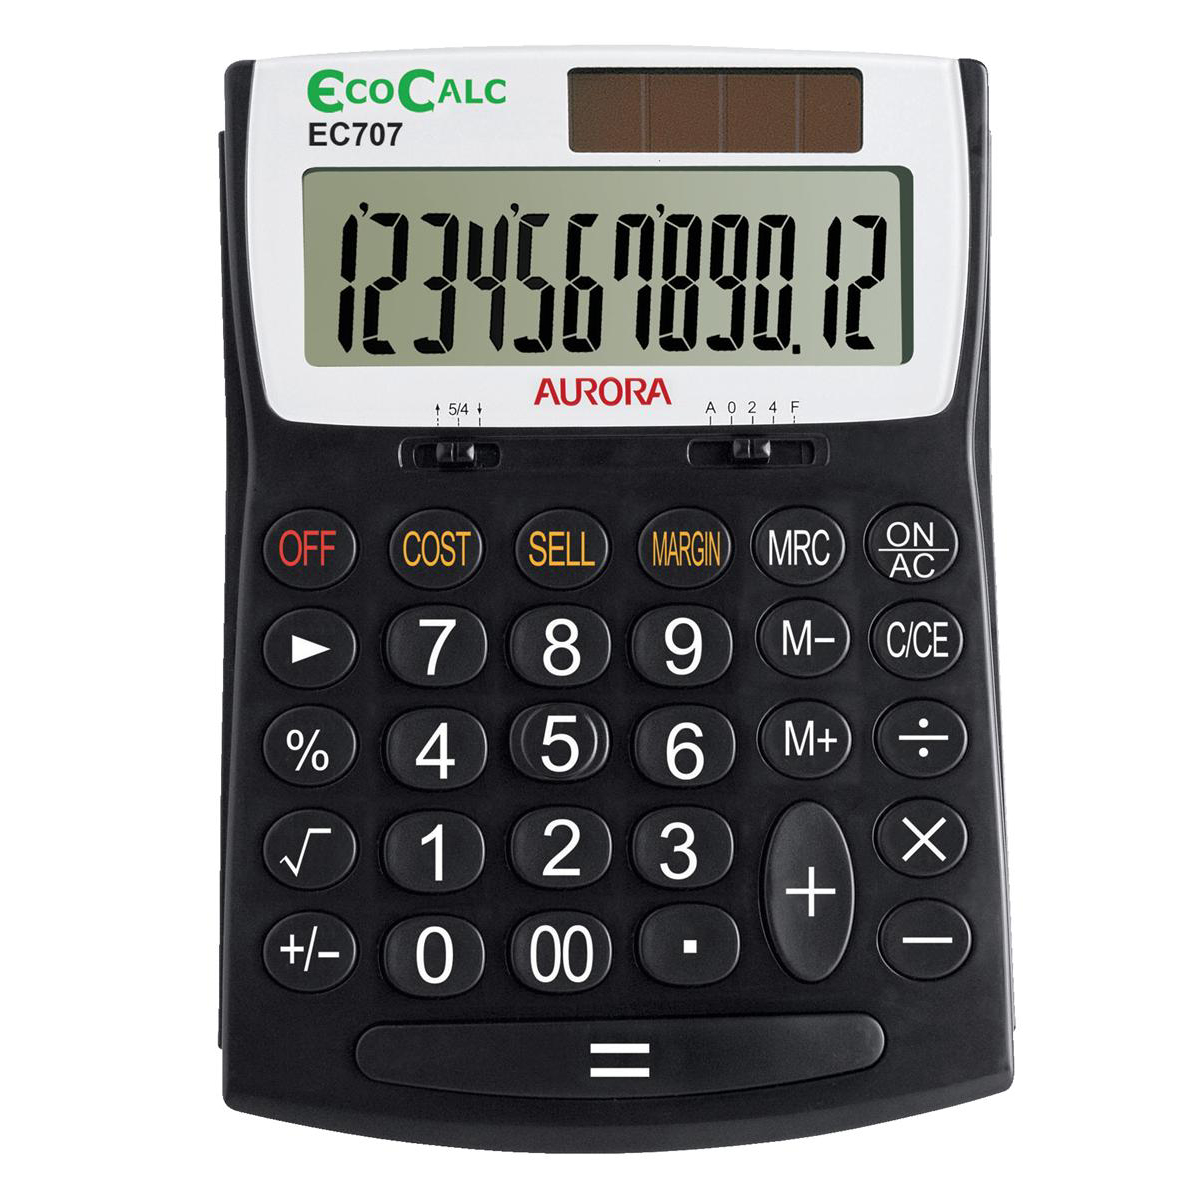 Aurora EcoCalc Desktop Calculator 12 Digit 3 Key Memory Recycled Solar Power 128x31x180mm Black Ref EC707